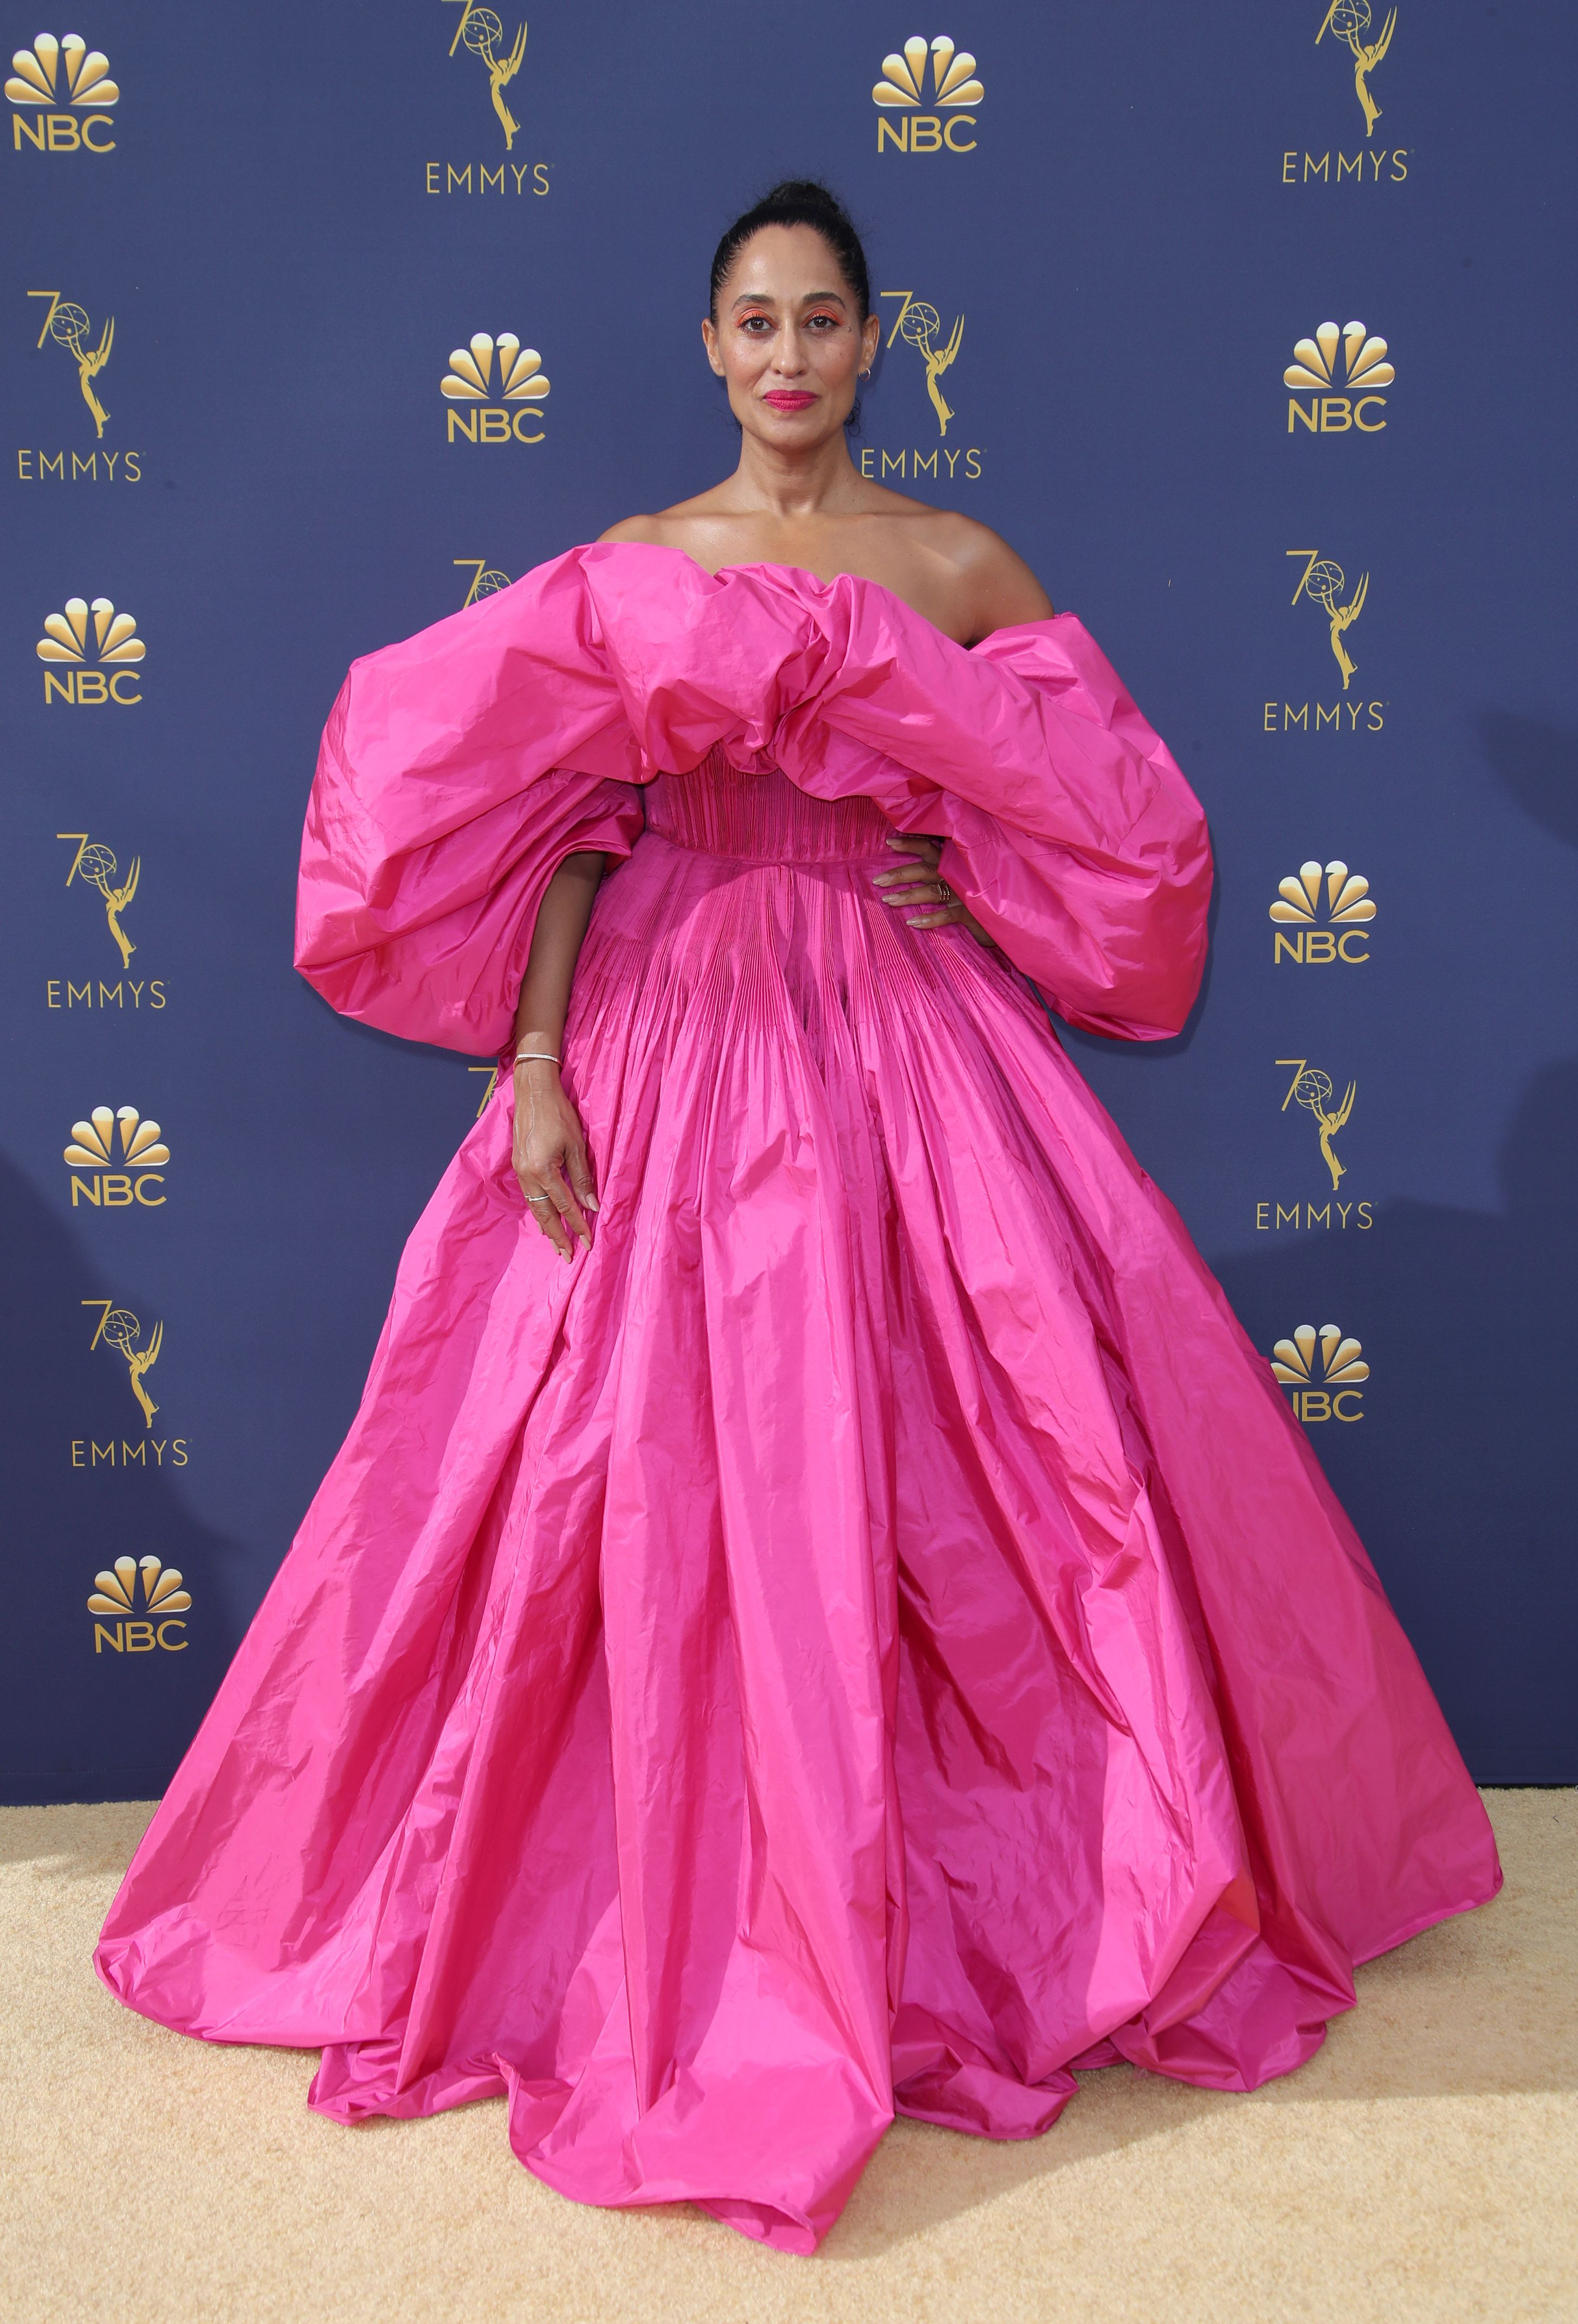 Photos of The Most Memorable Emmys Red Carpet Looks of All Time